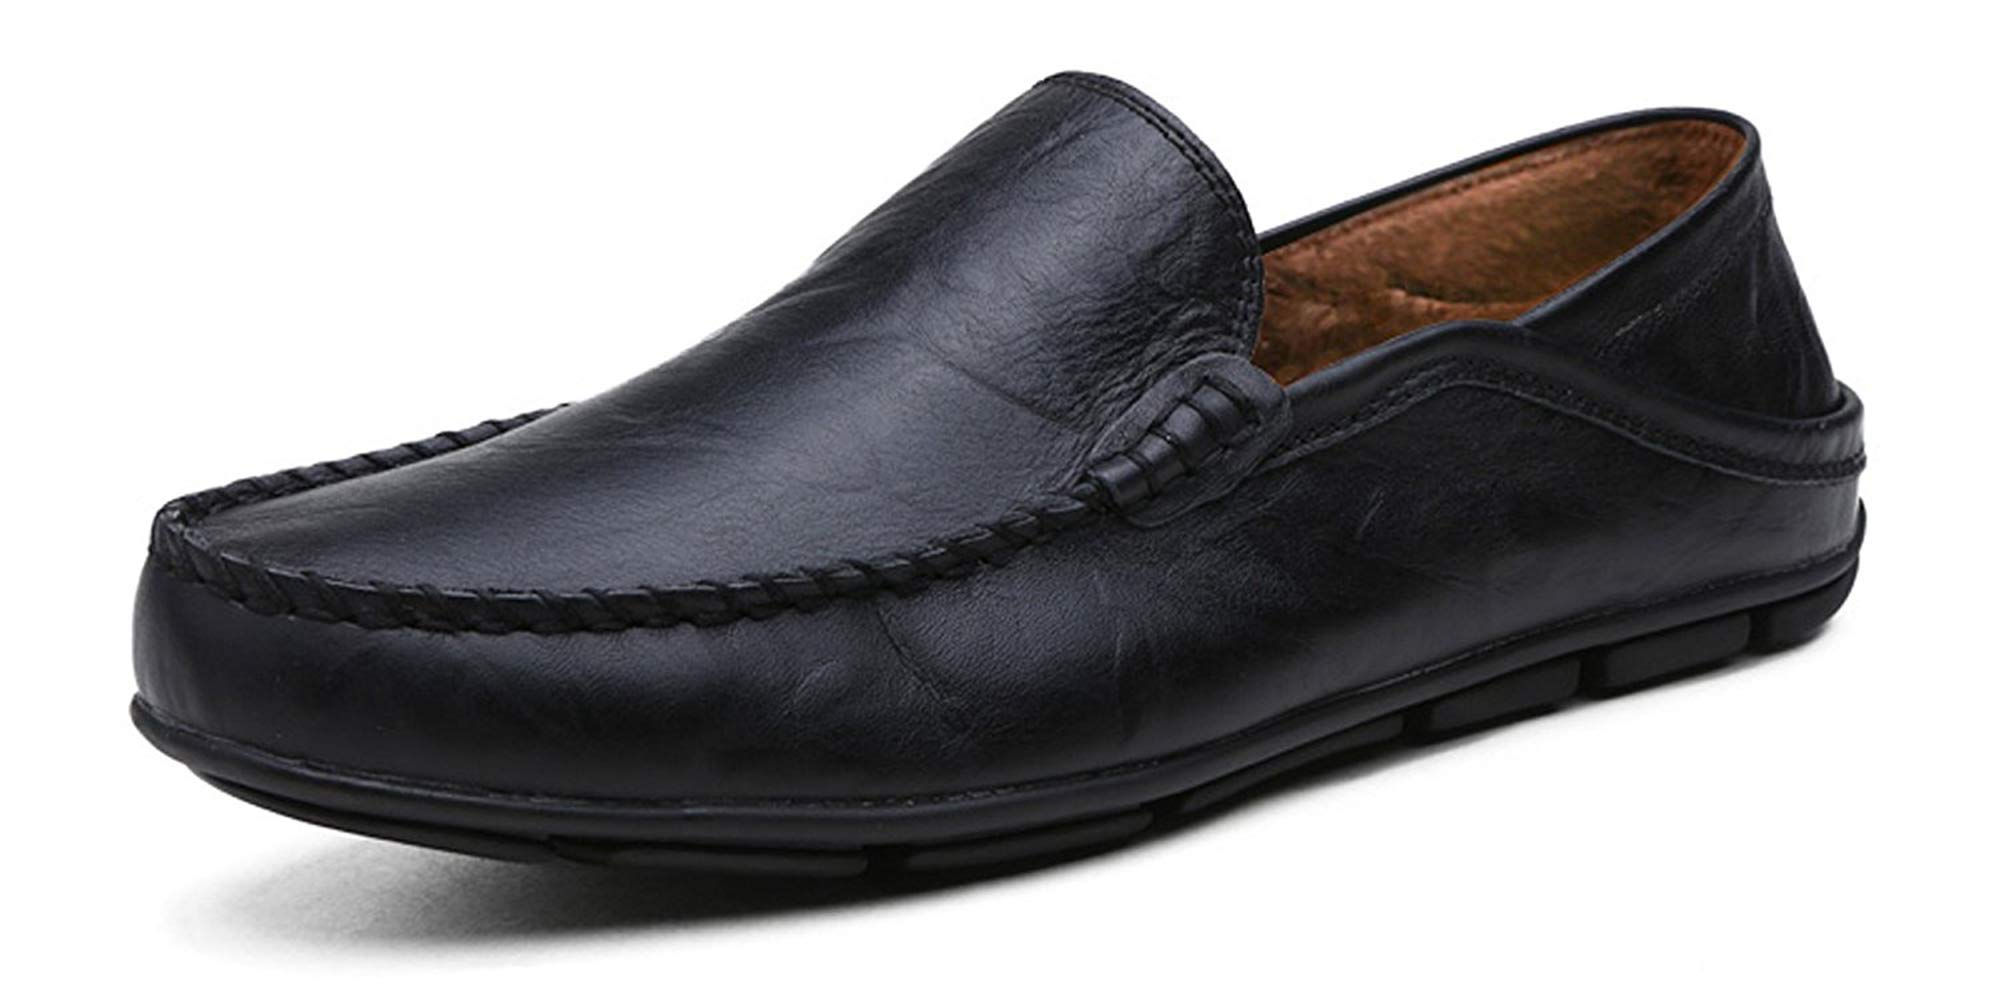 Go Tour Men's Premium Genuine Leather Casual Slip On Loafers Breathable Driving Shoes Fashion Slipper Black Fur 42